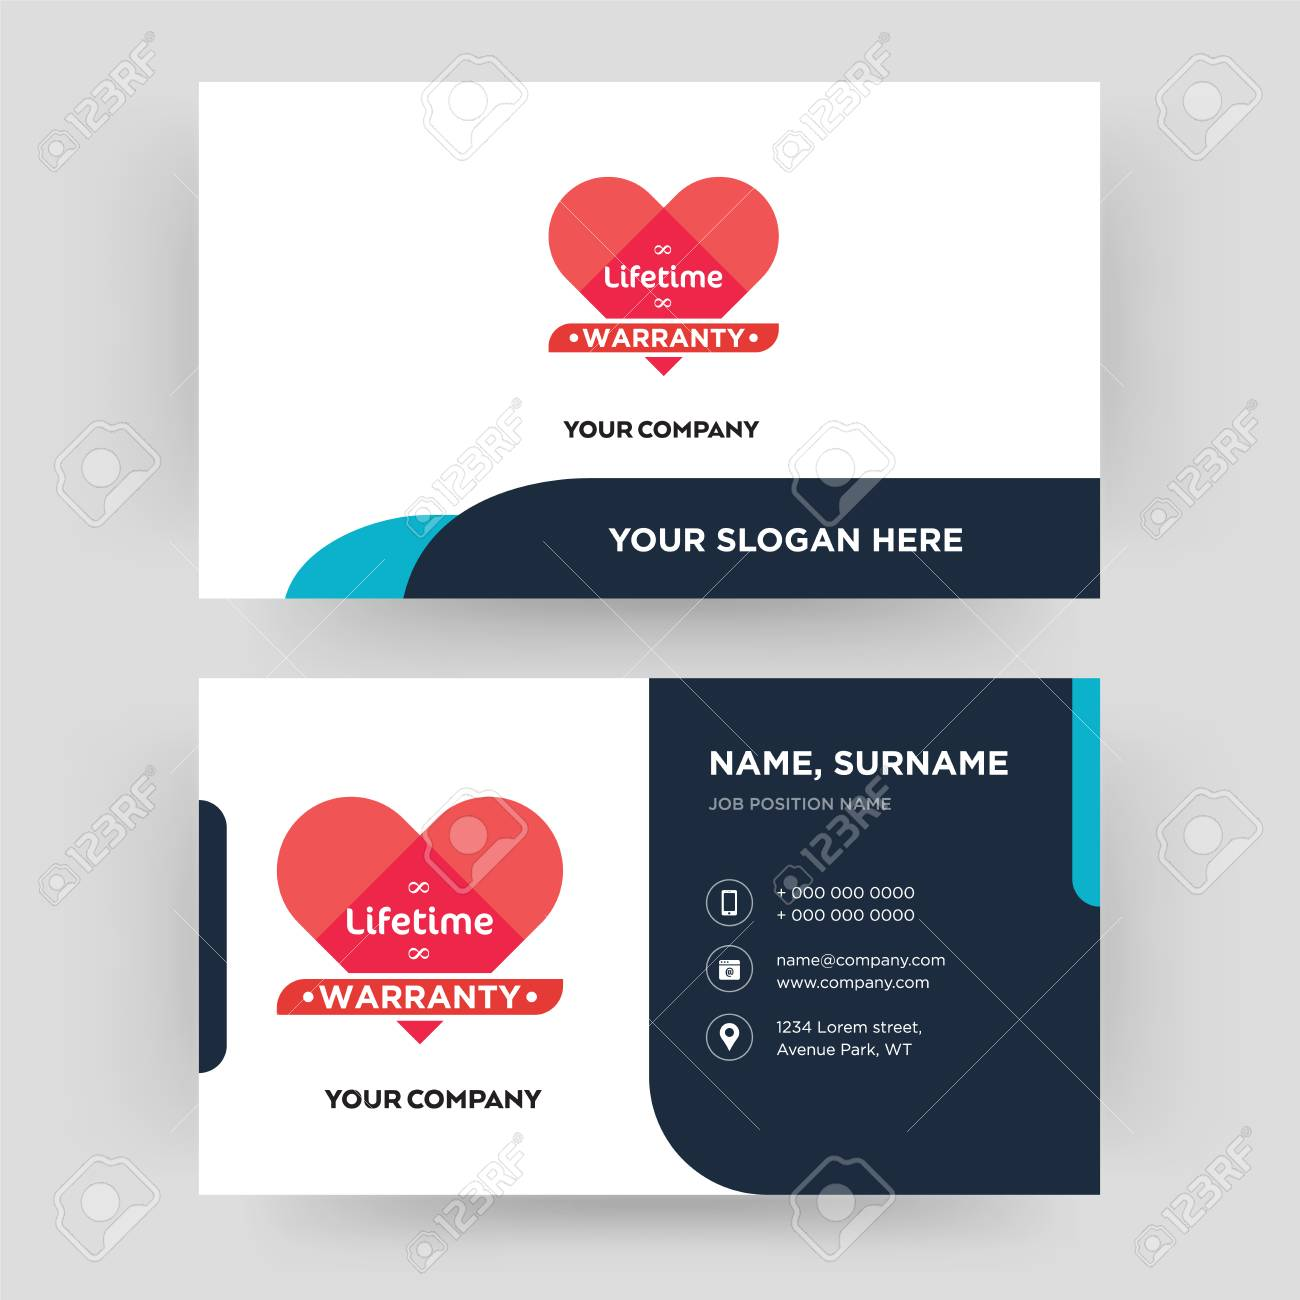 lifetime warranty business card design template visiting for